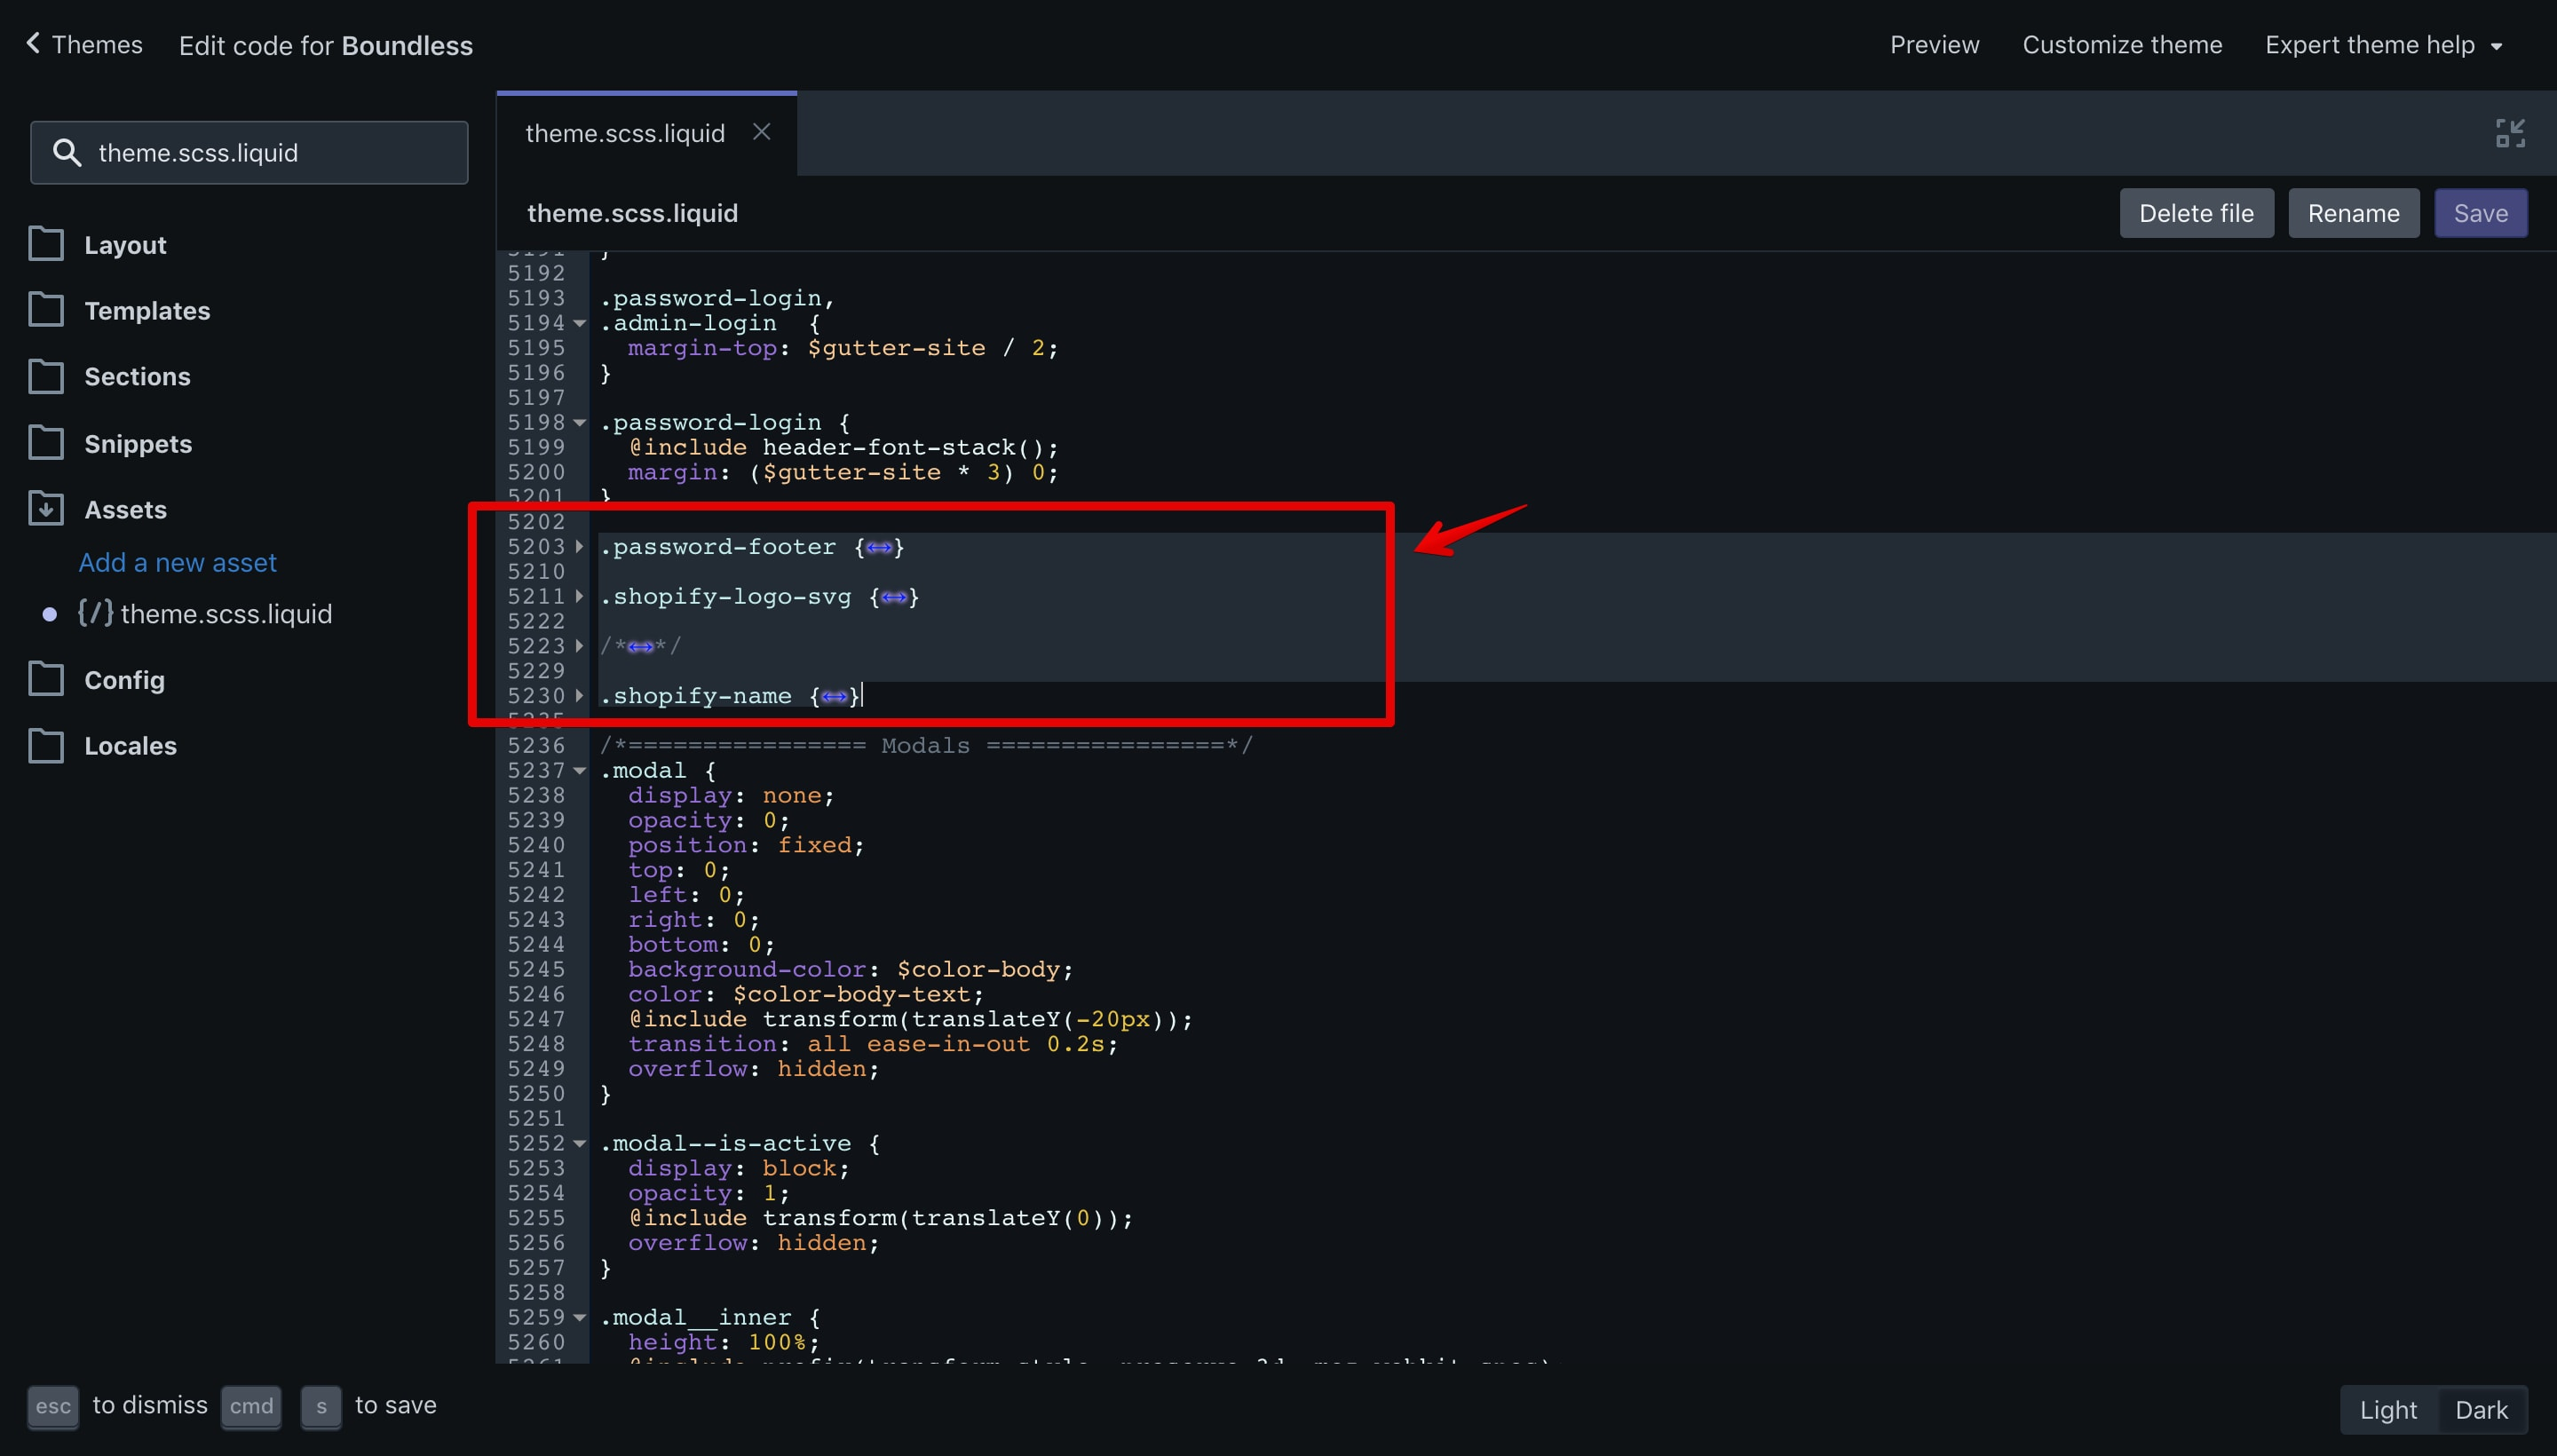 Folded CSS code that has to be removed in the Boundless theme.